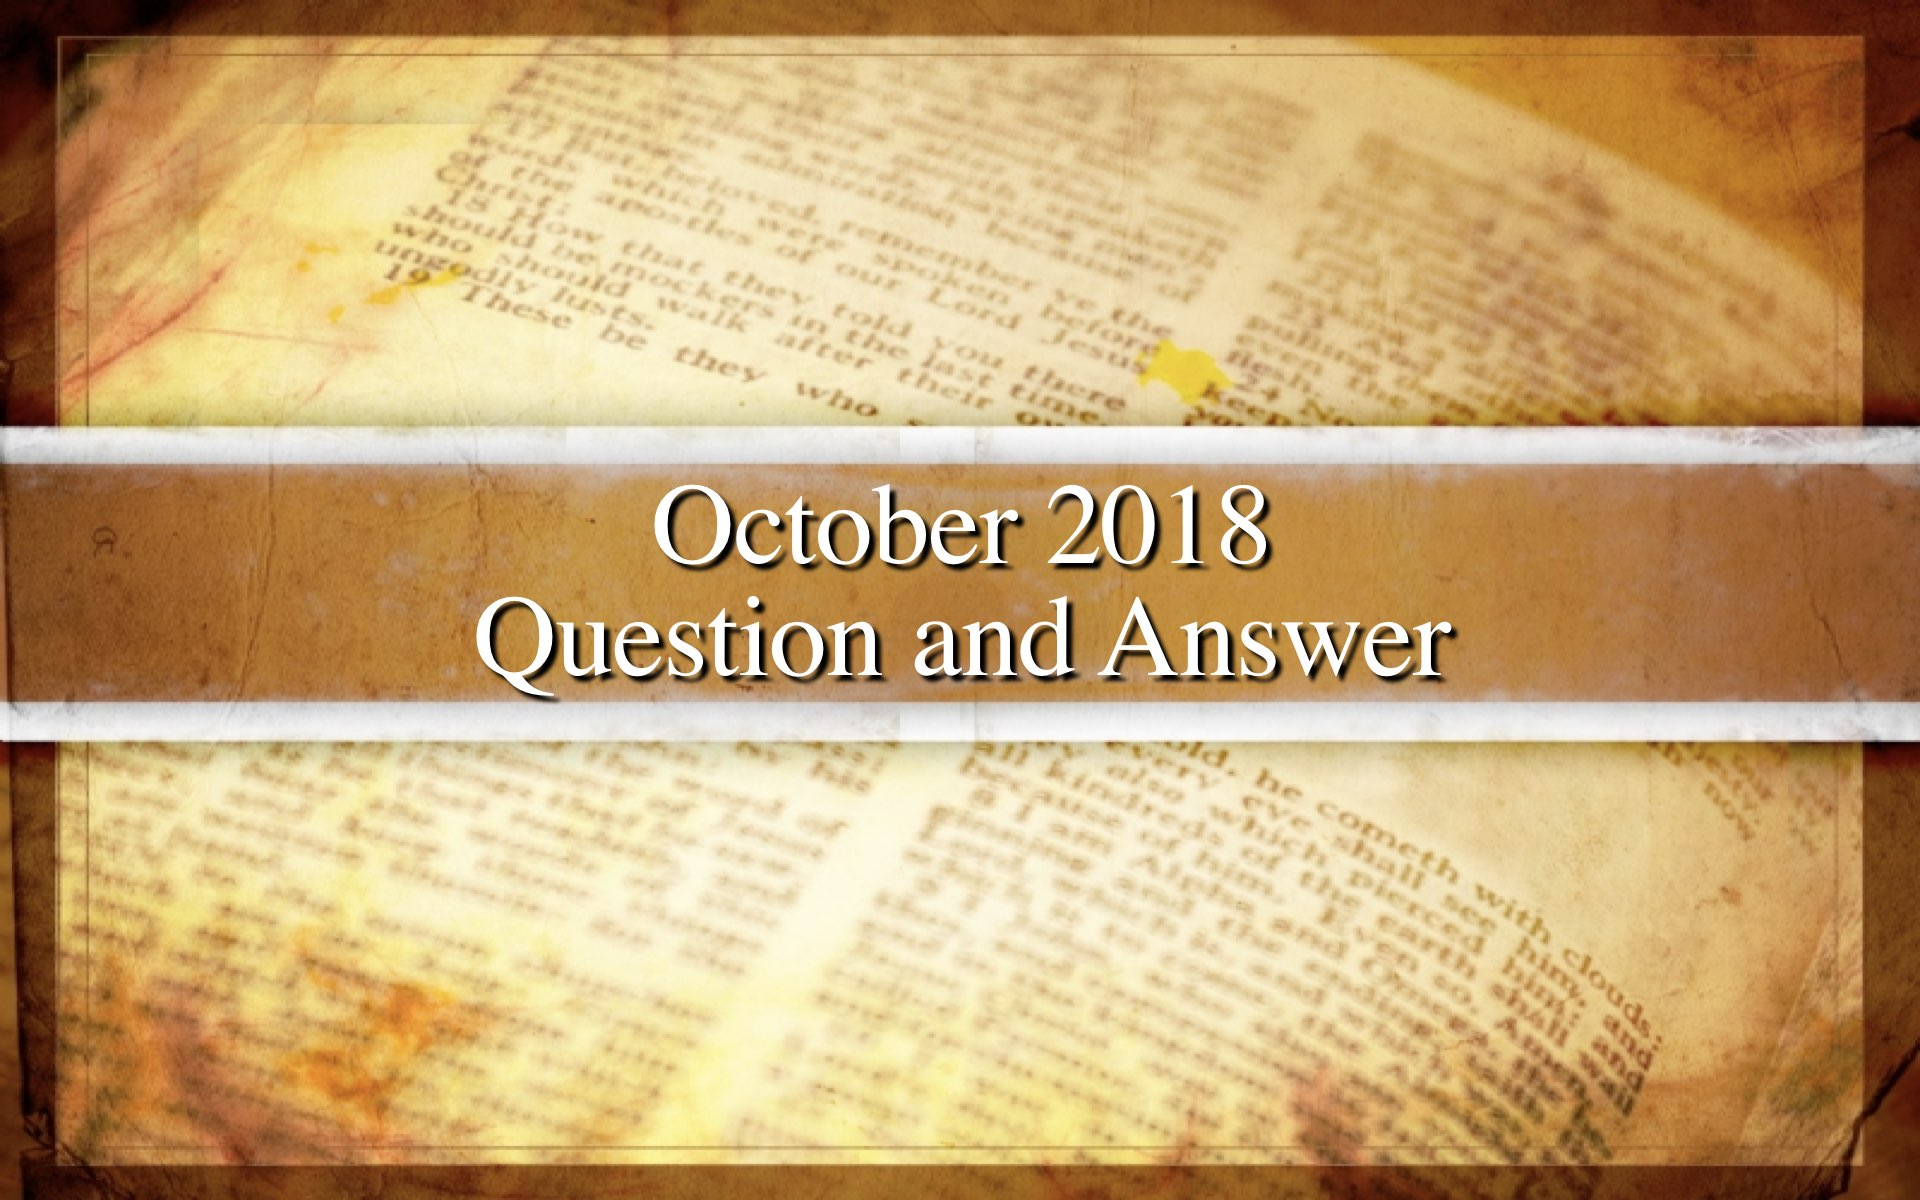 October 2018 Question and Answer